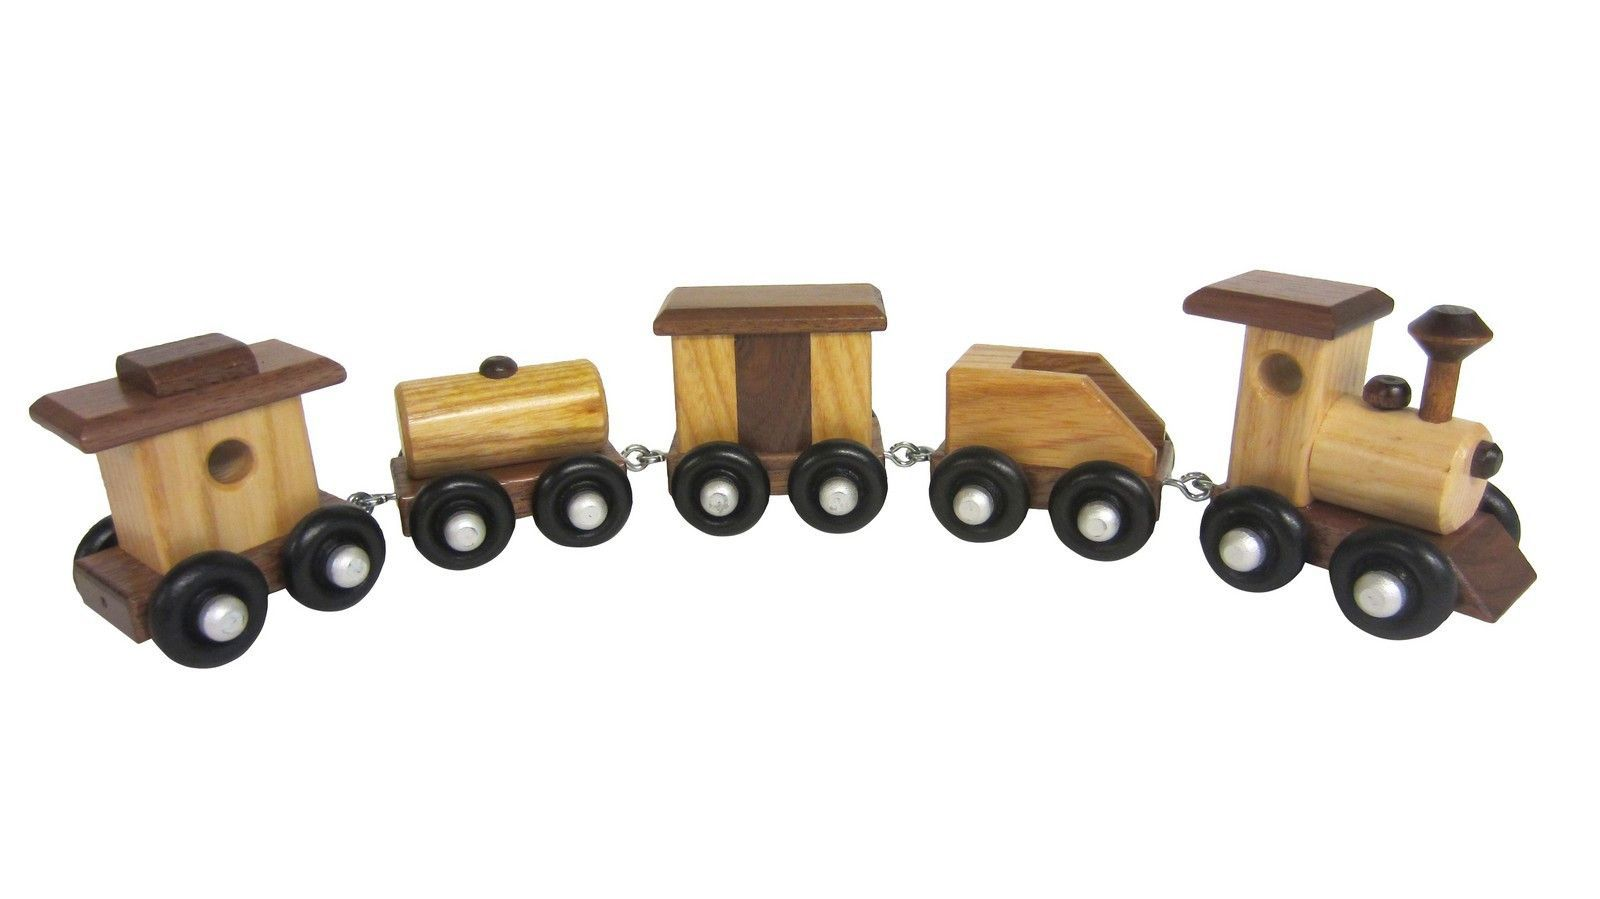 Woodworking online traning wooden toy train toys